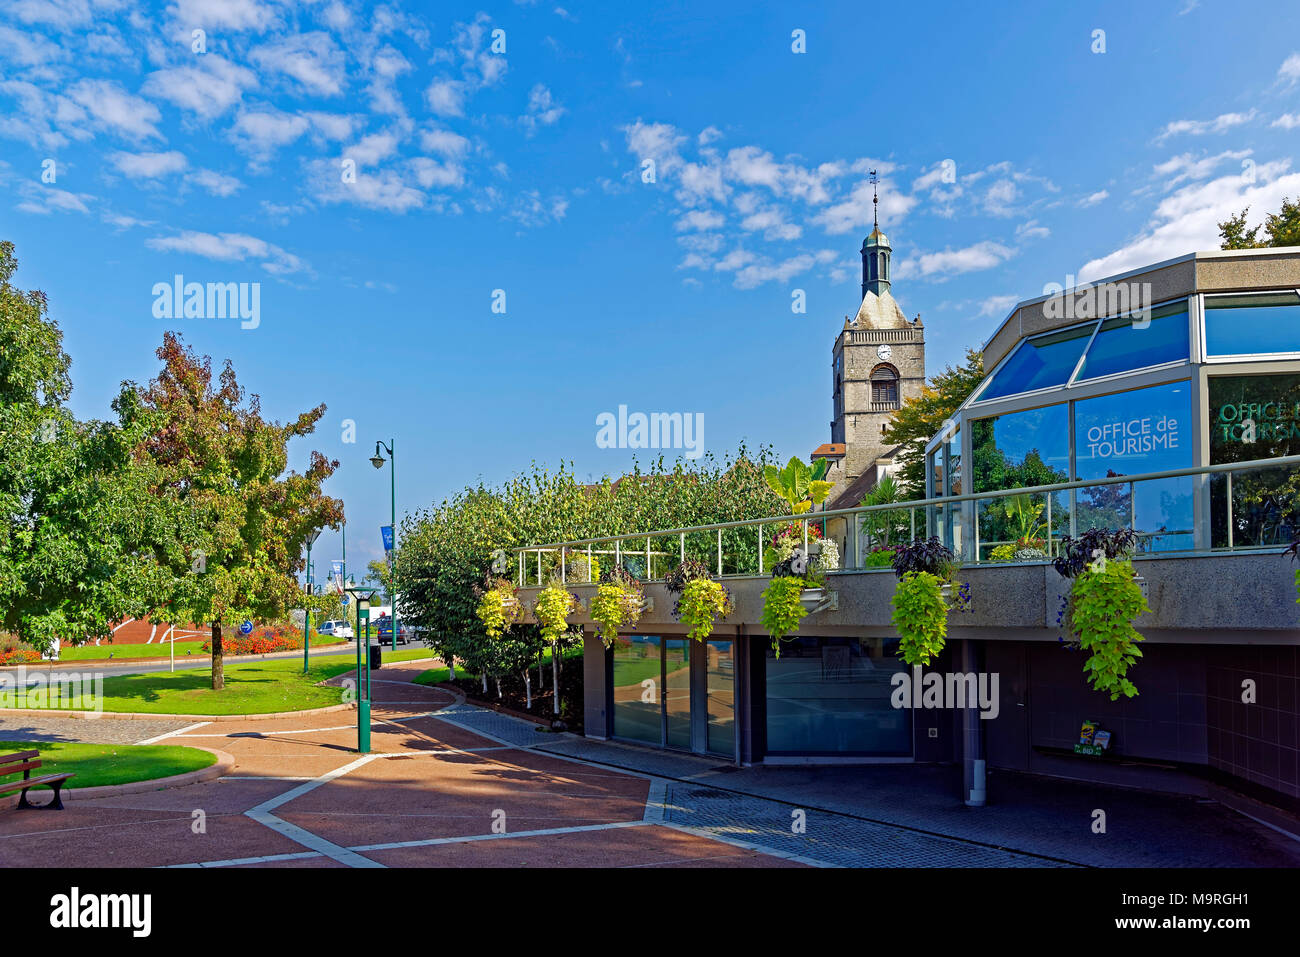 Office de tourisme stock photos office de tourisme stock - Office de tourisme saint valery sur somme ...